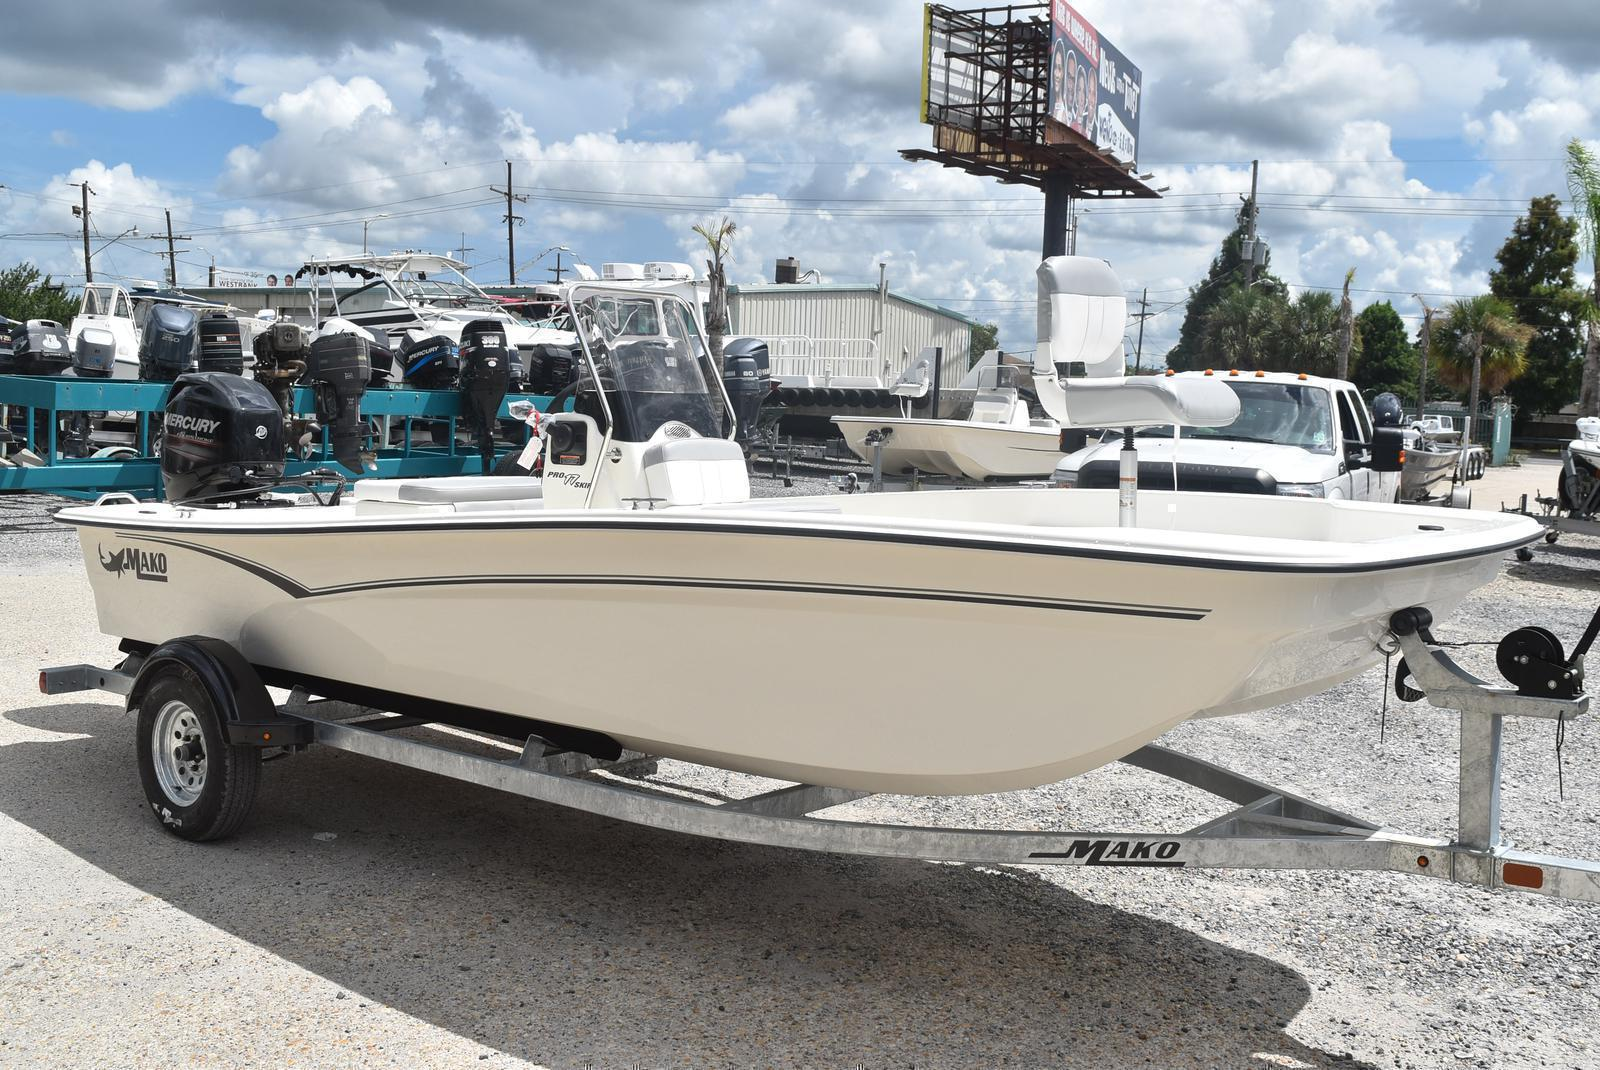 2020 Mako boat for sale, model of the boat is Pro Skiff 17, 75 ELPT & Image # 642 of 702